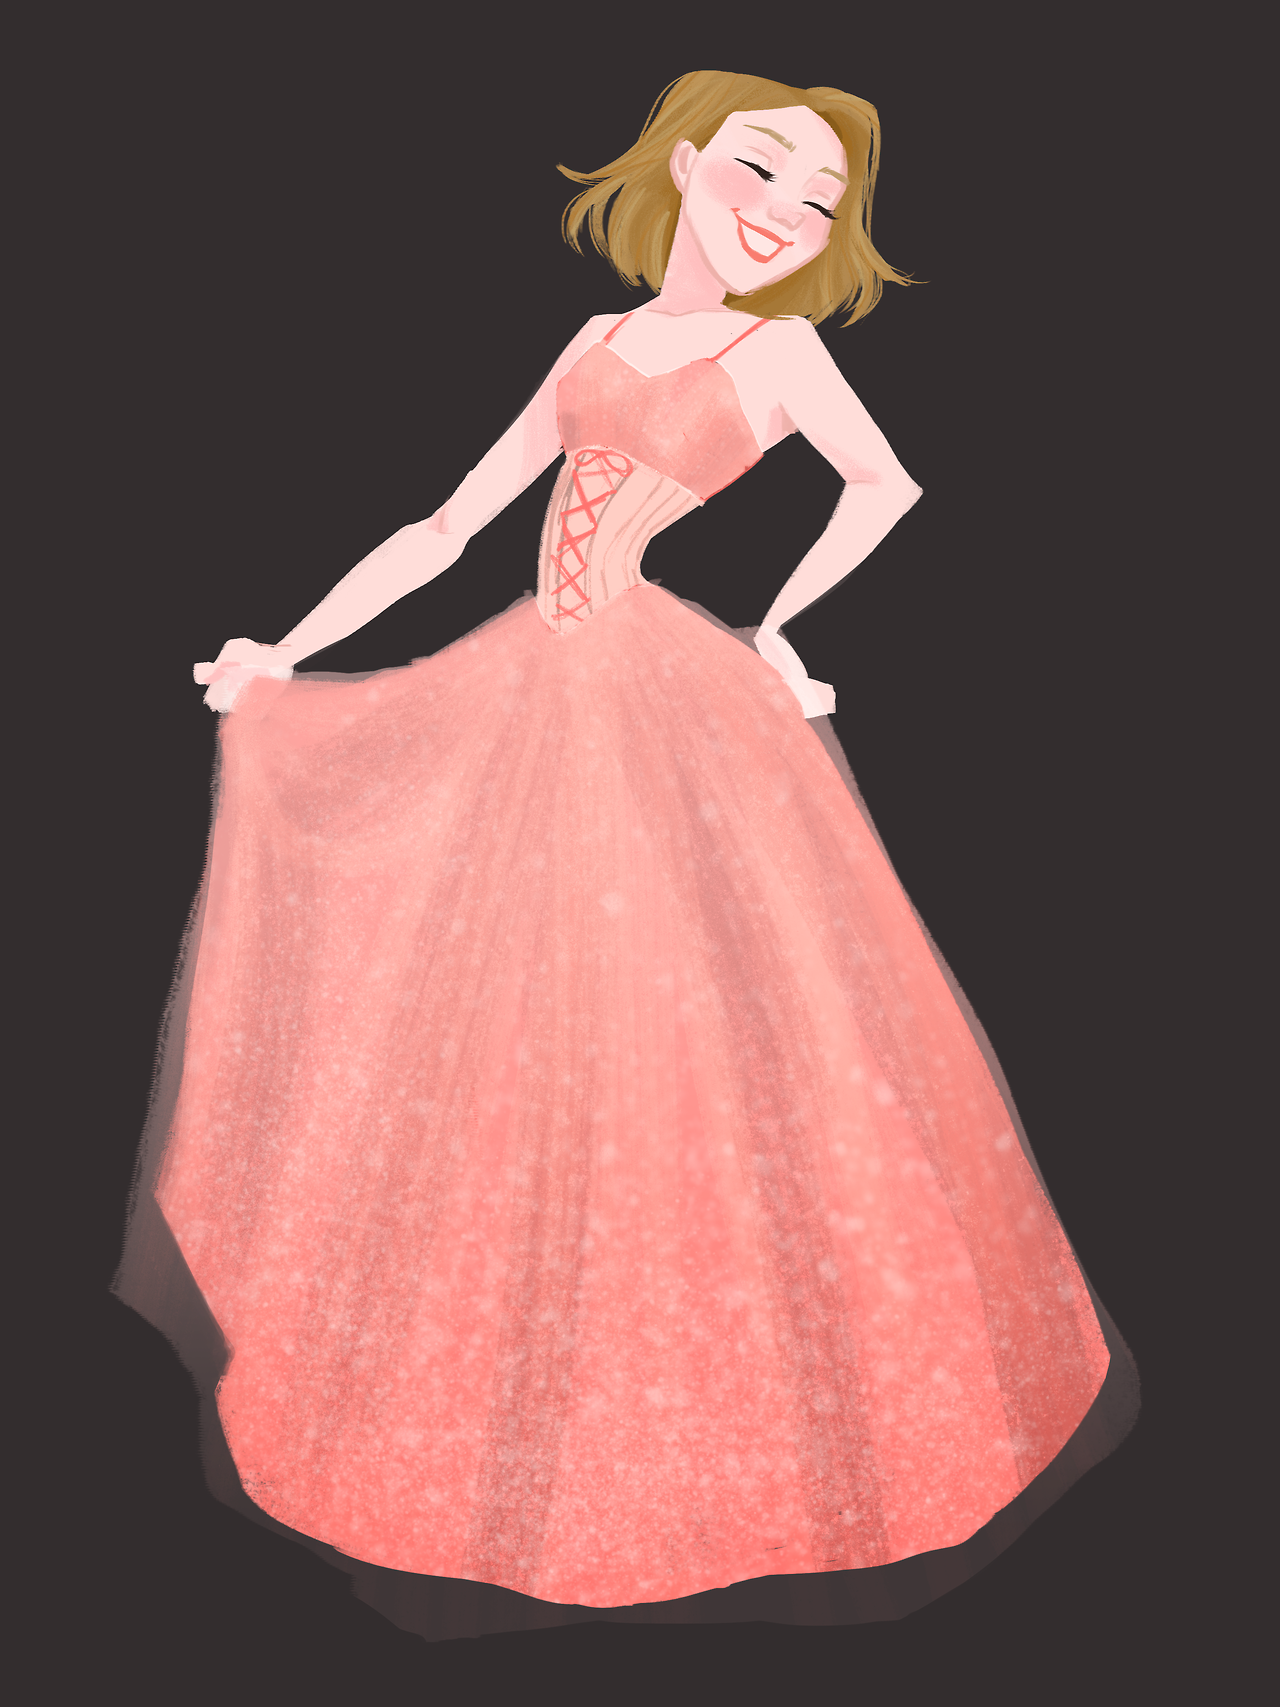 Pink dress drawing  art by drawingpastmybedtime  Character Design  Inspiration